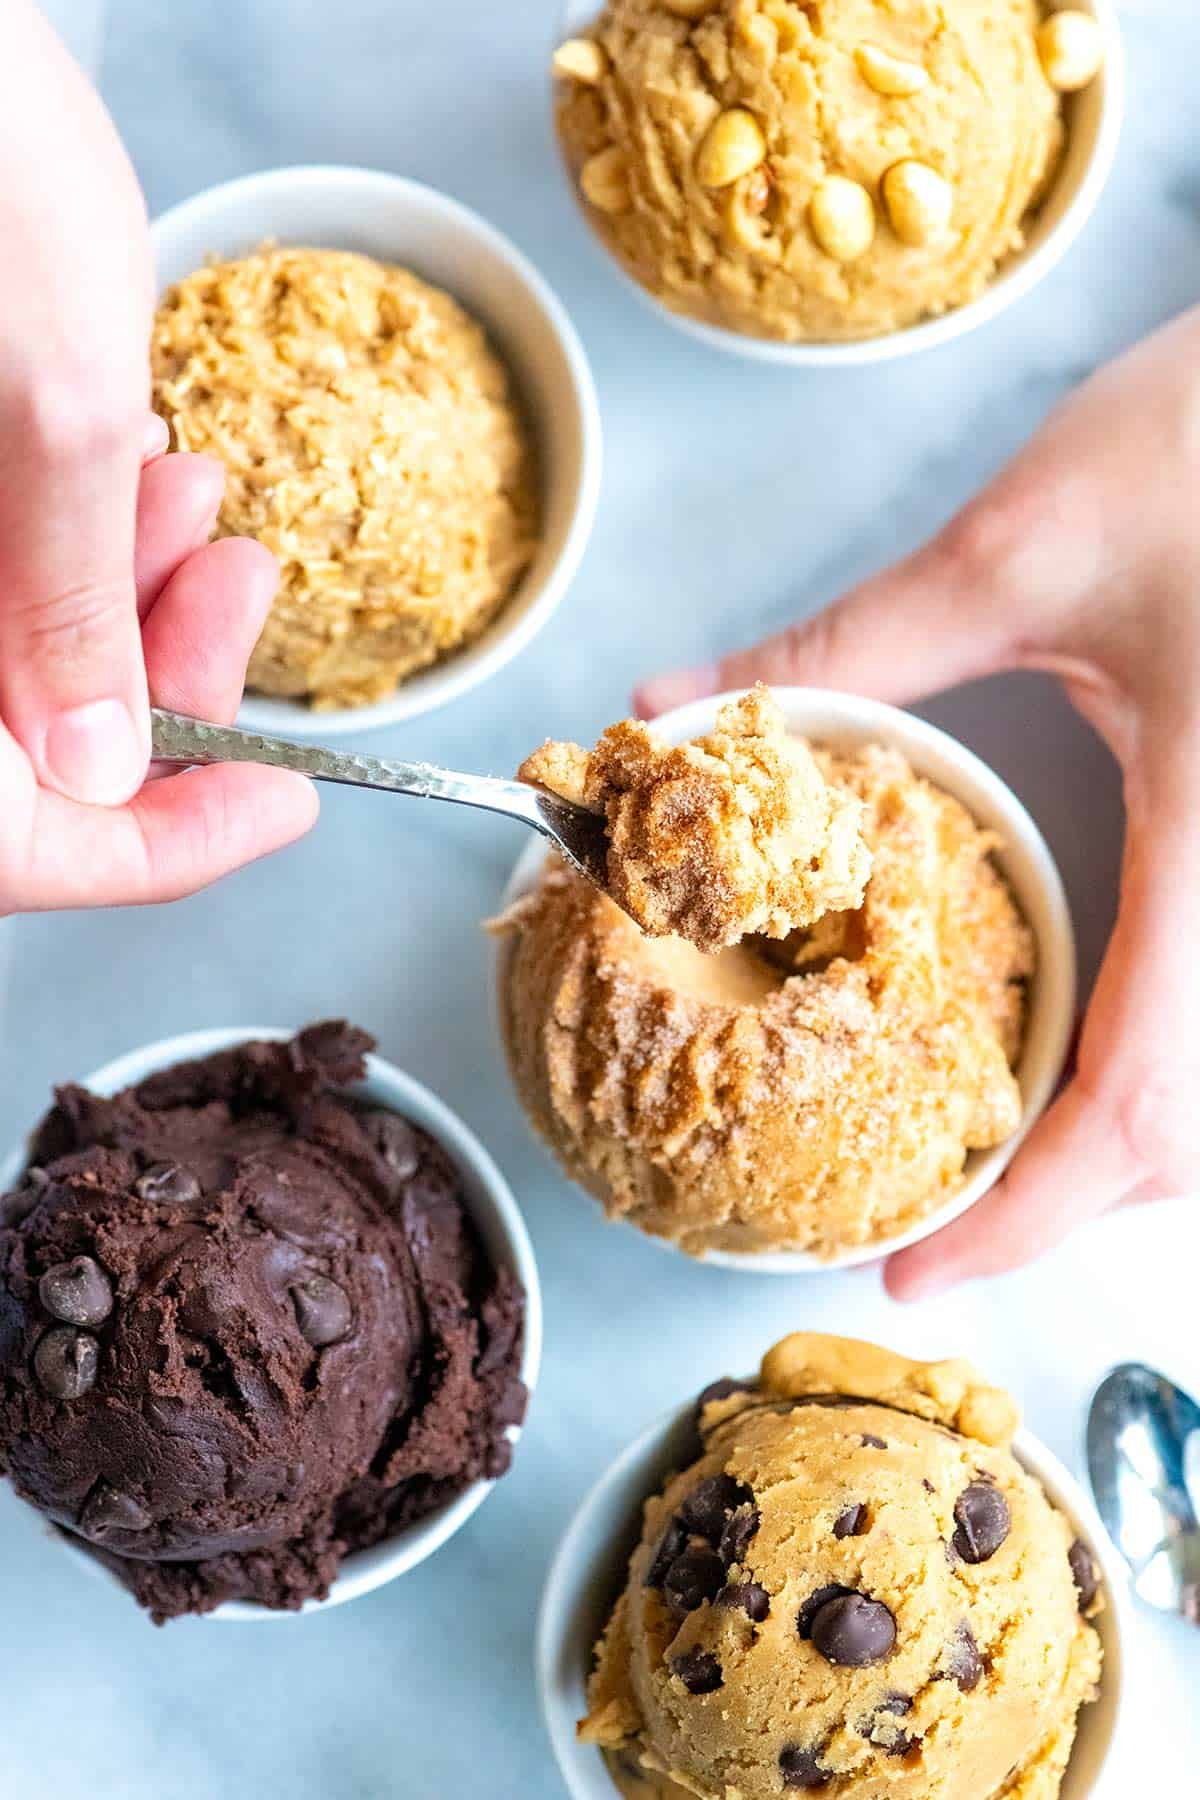 How to Make the Best Edible Cookie Dough